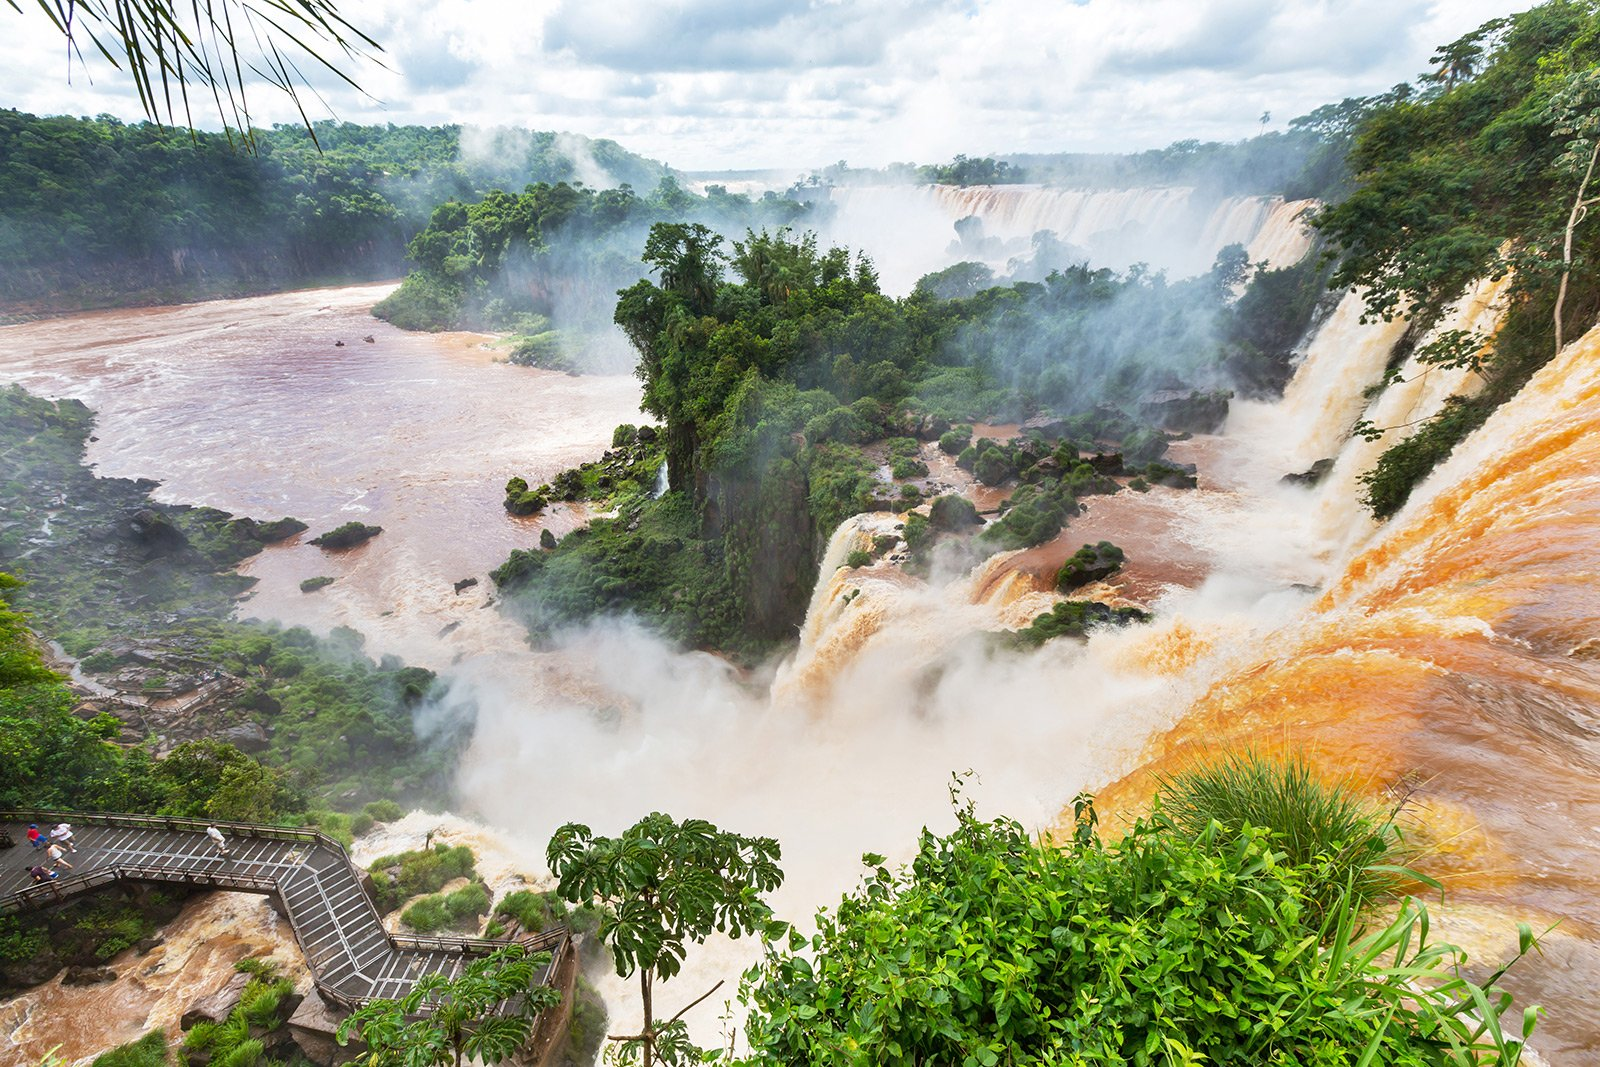 How to see the Iguacu Waterfalls from the helicopter in Rio de Janeiro